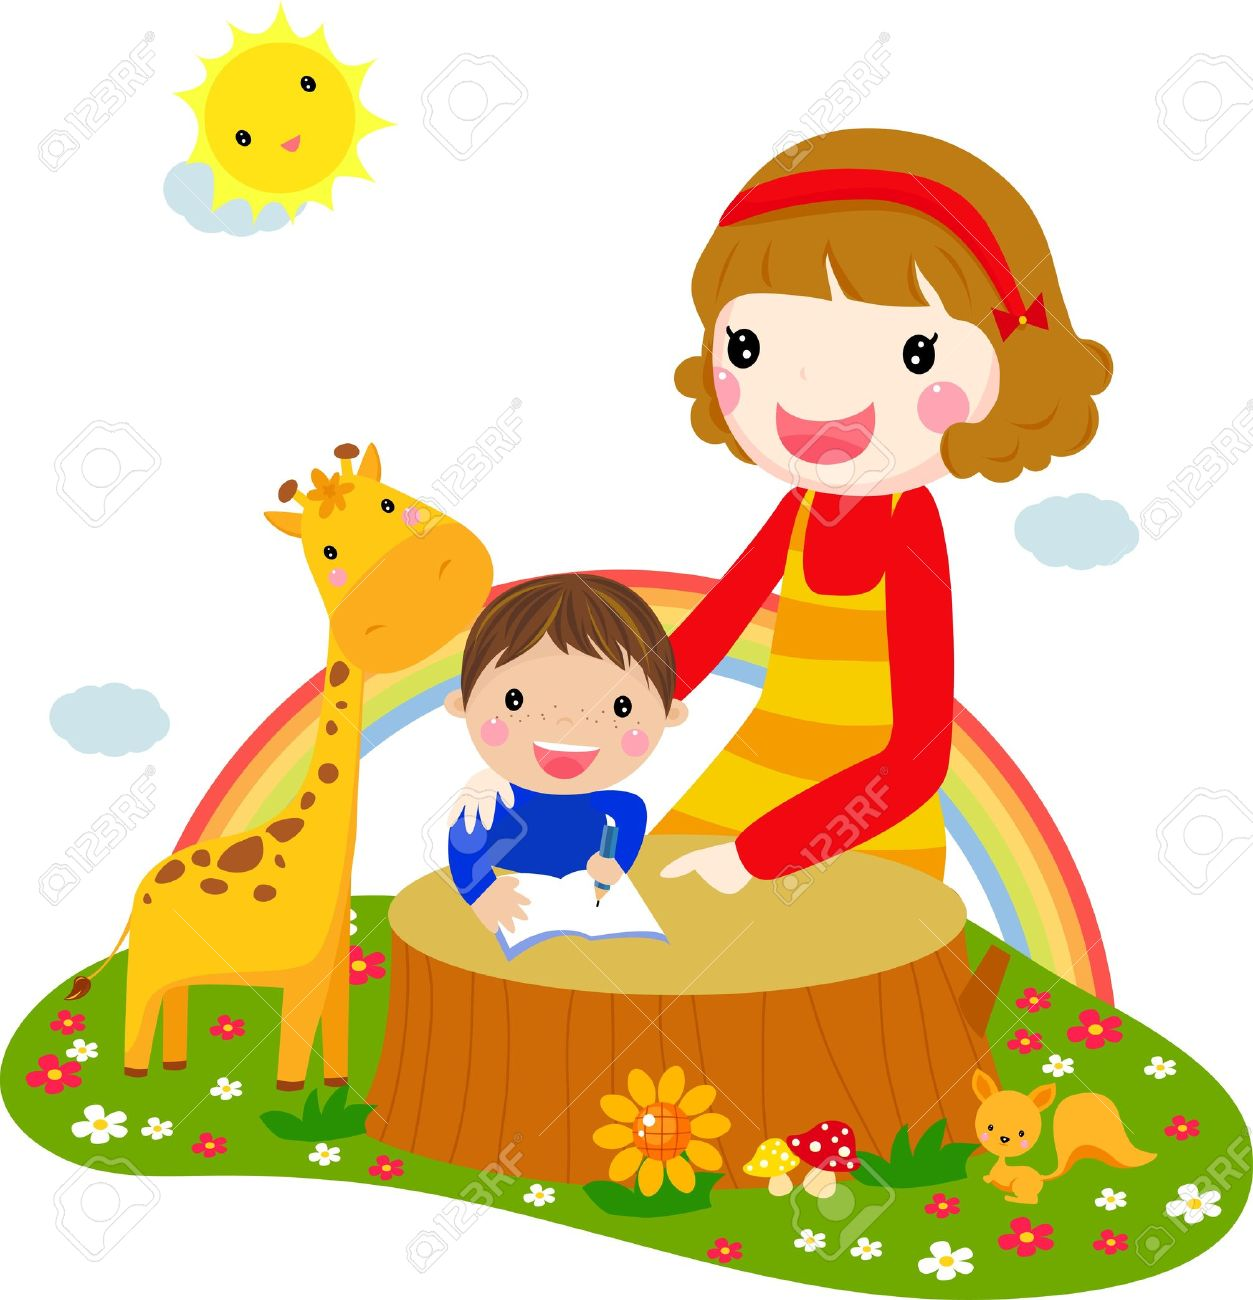 Child listening his mother read a storytelling book Stock Vector - 14999082